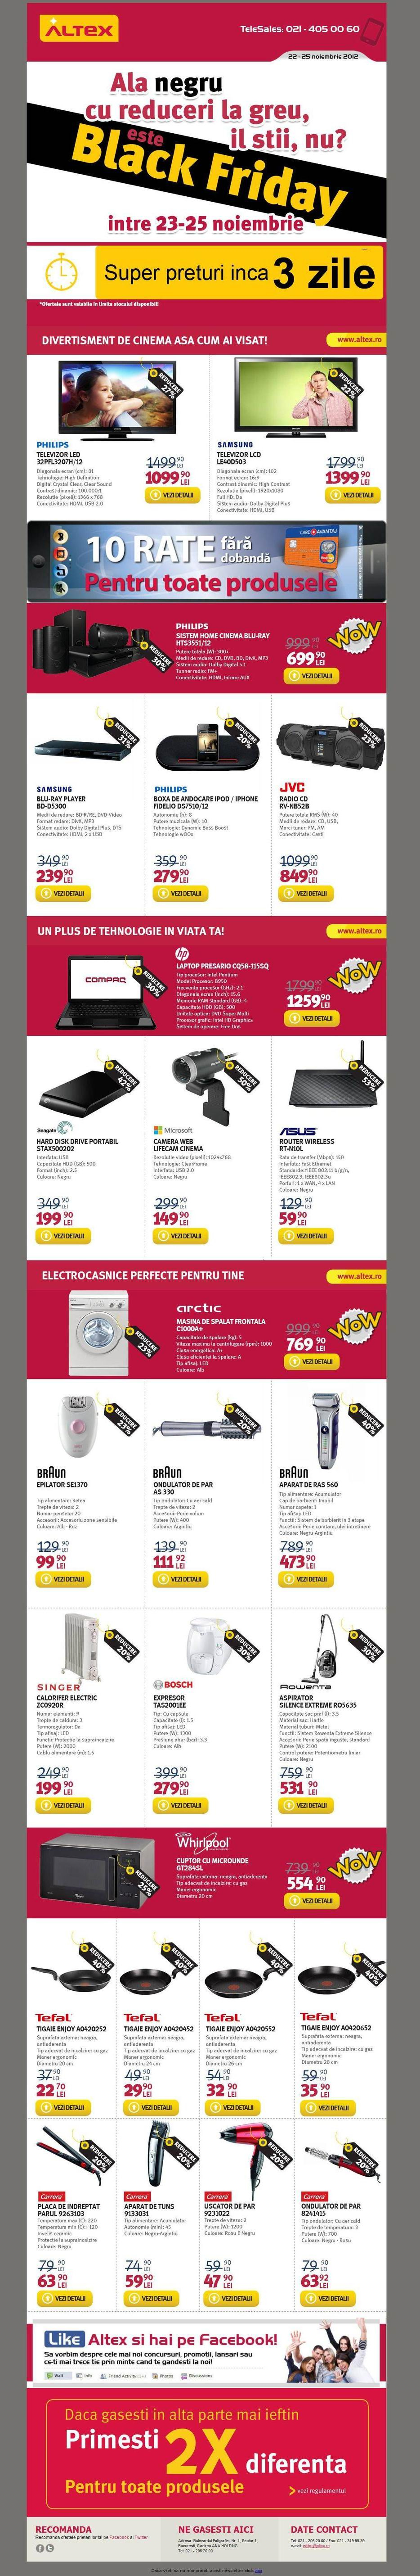 oferta altex black friday